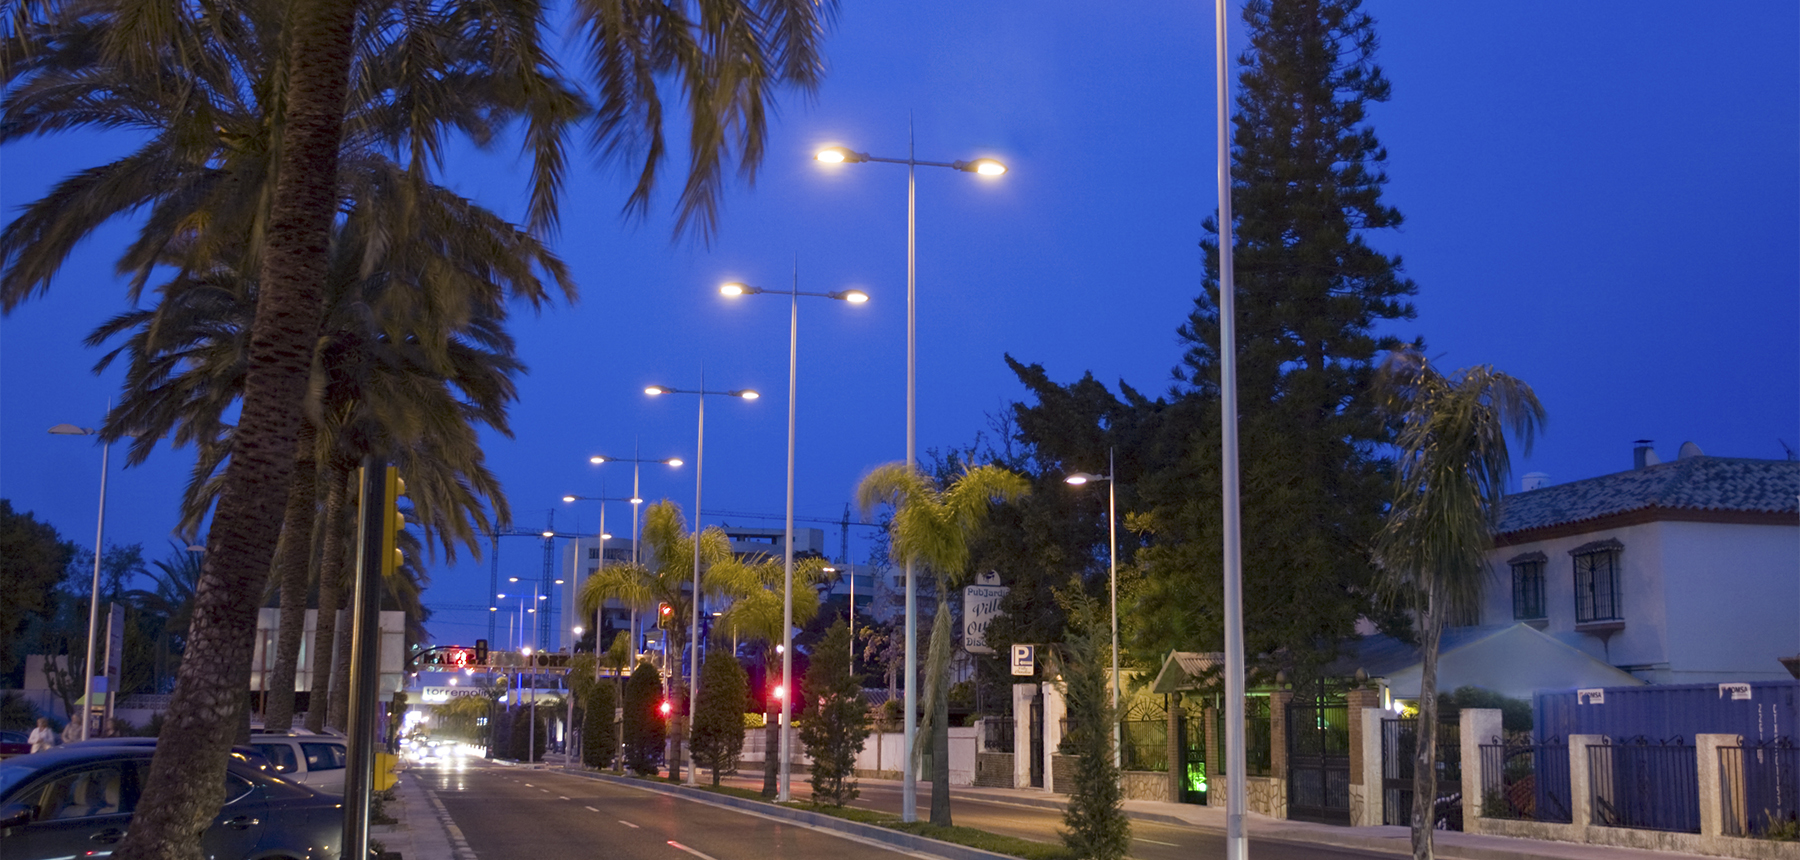 & Performance in Lighting - luminaire manufacturing company azcodes.com